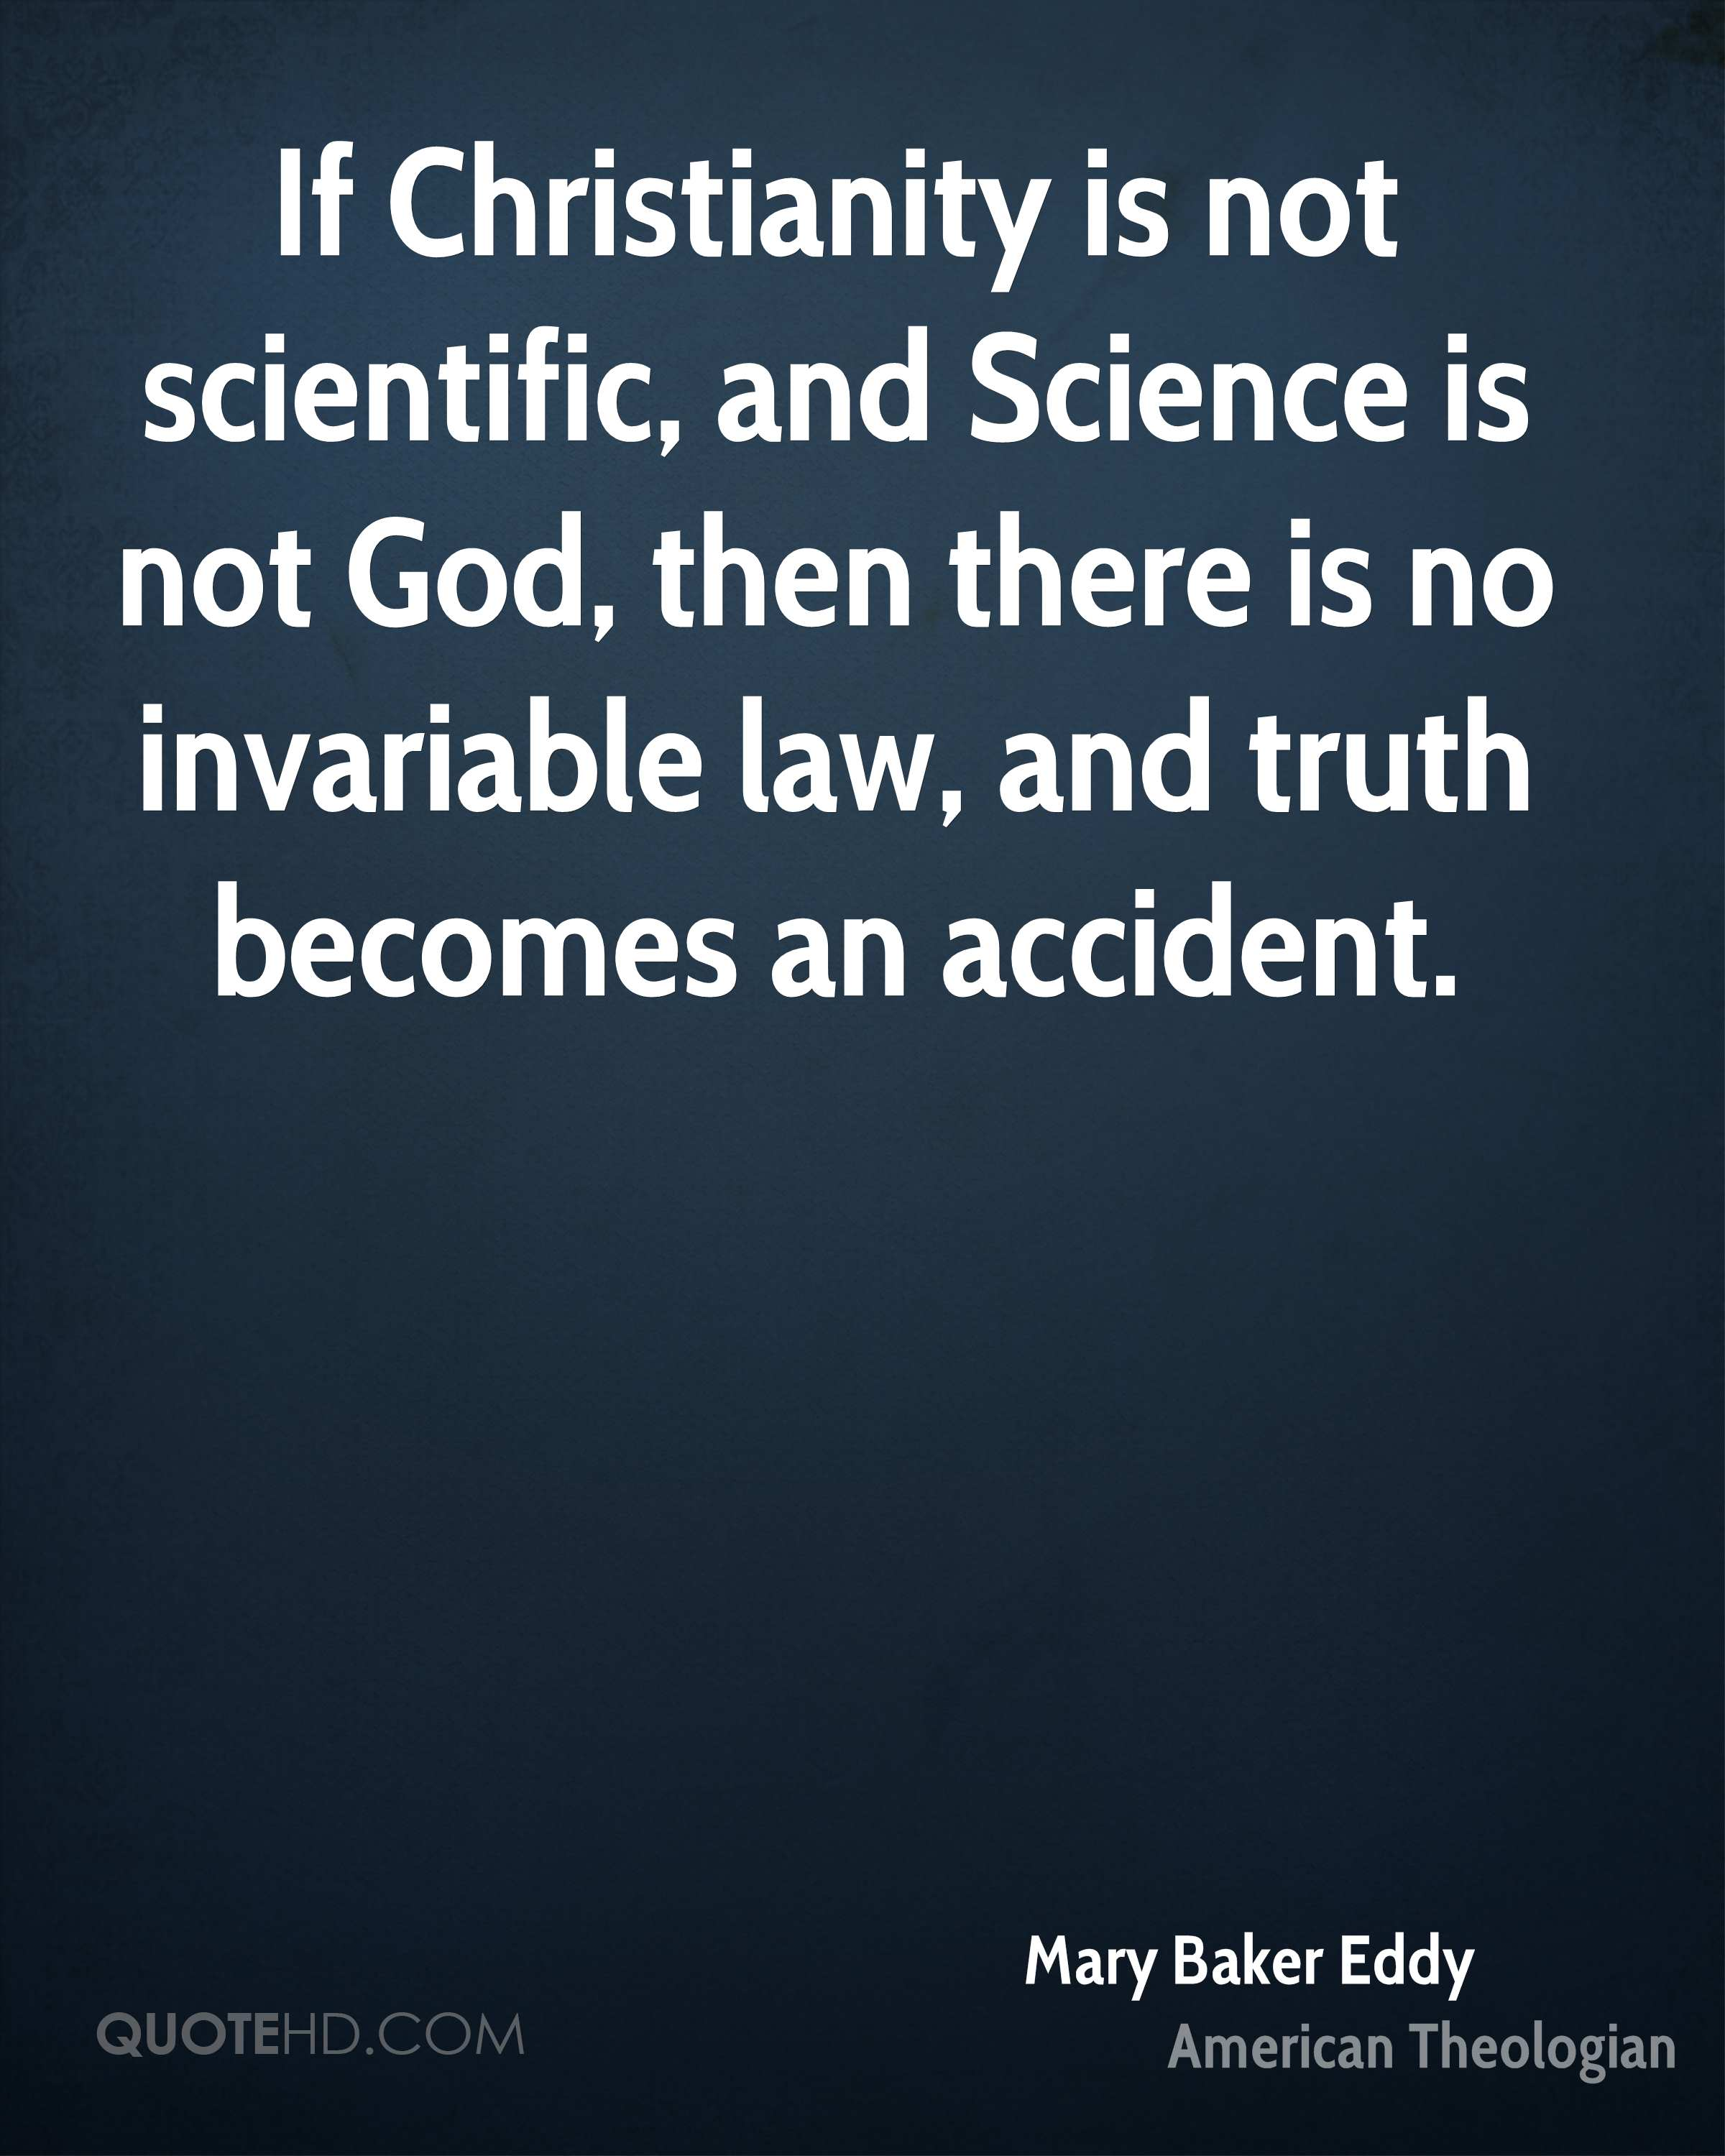 Mary Baker Eddy Science Quotes Quotehd